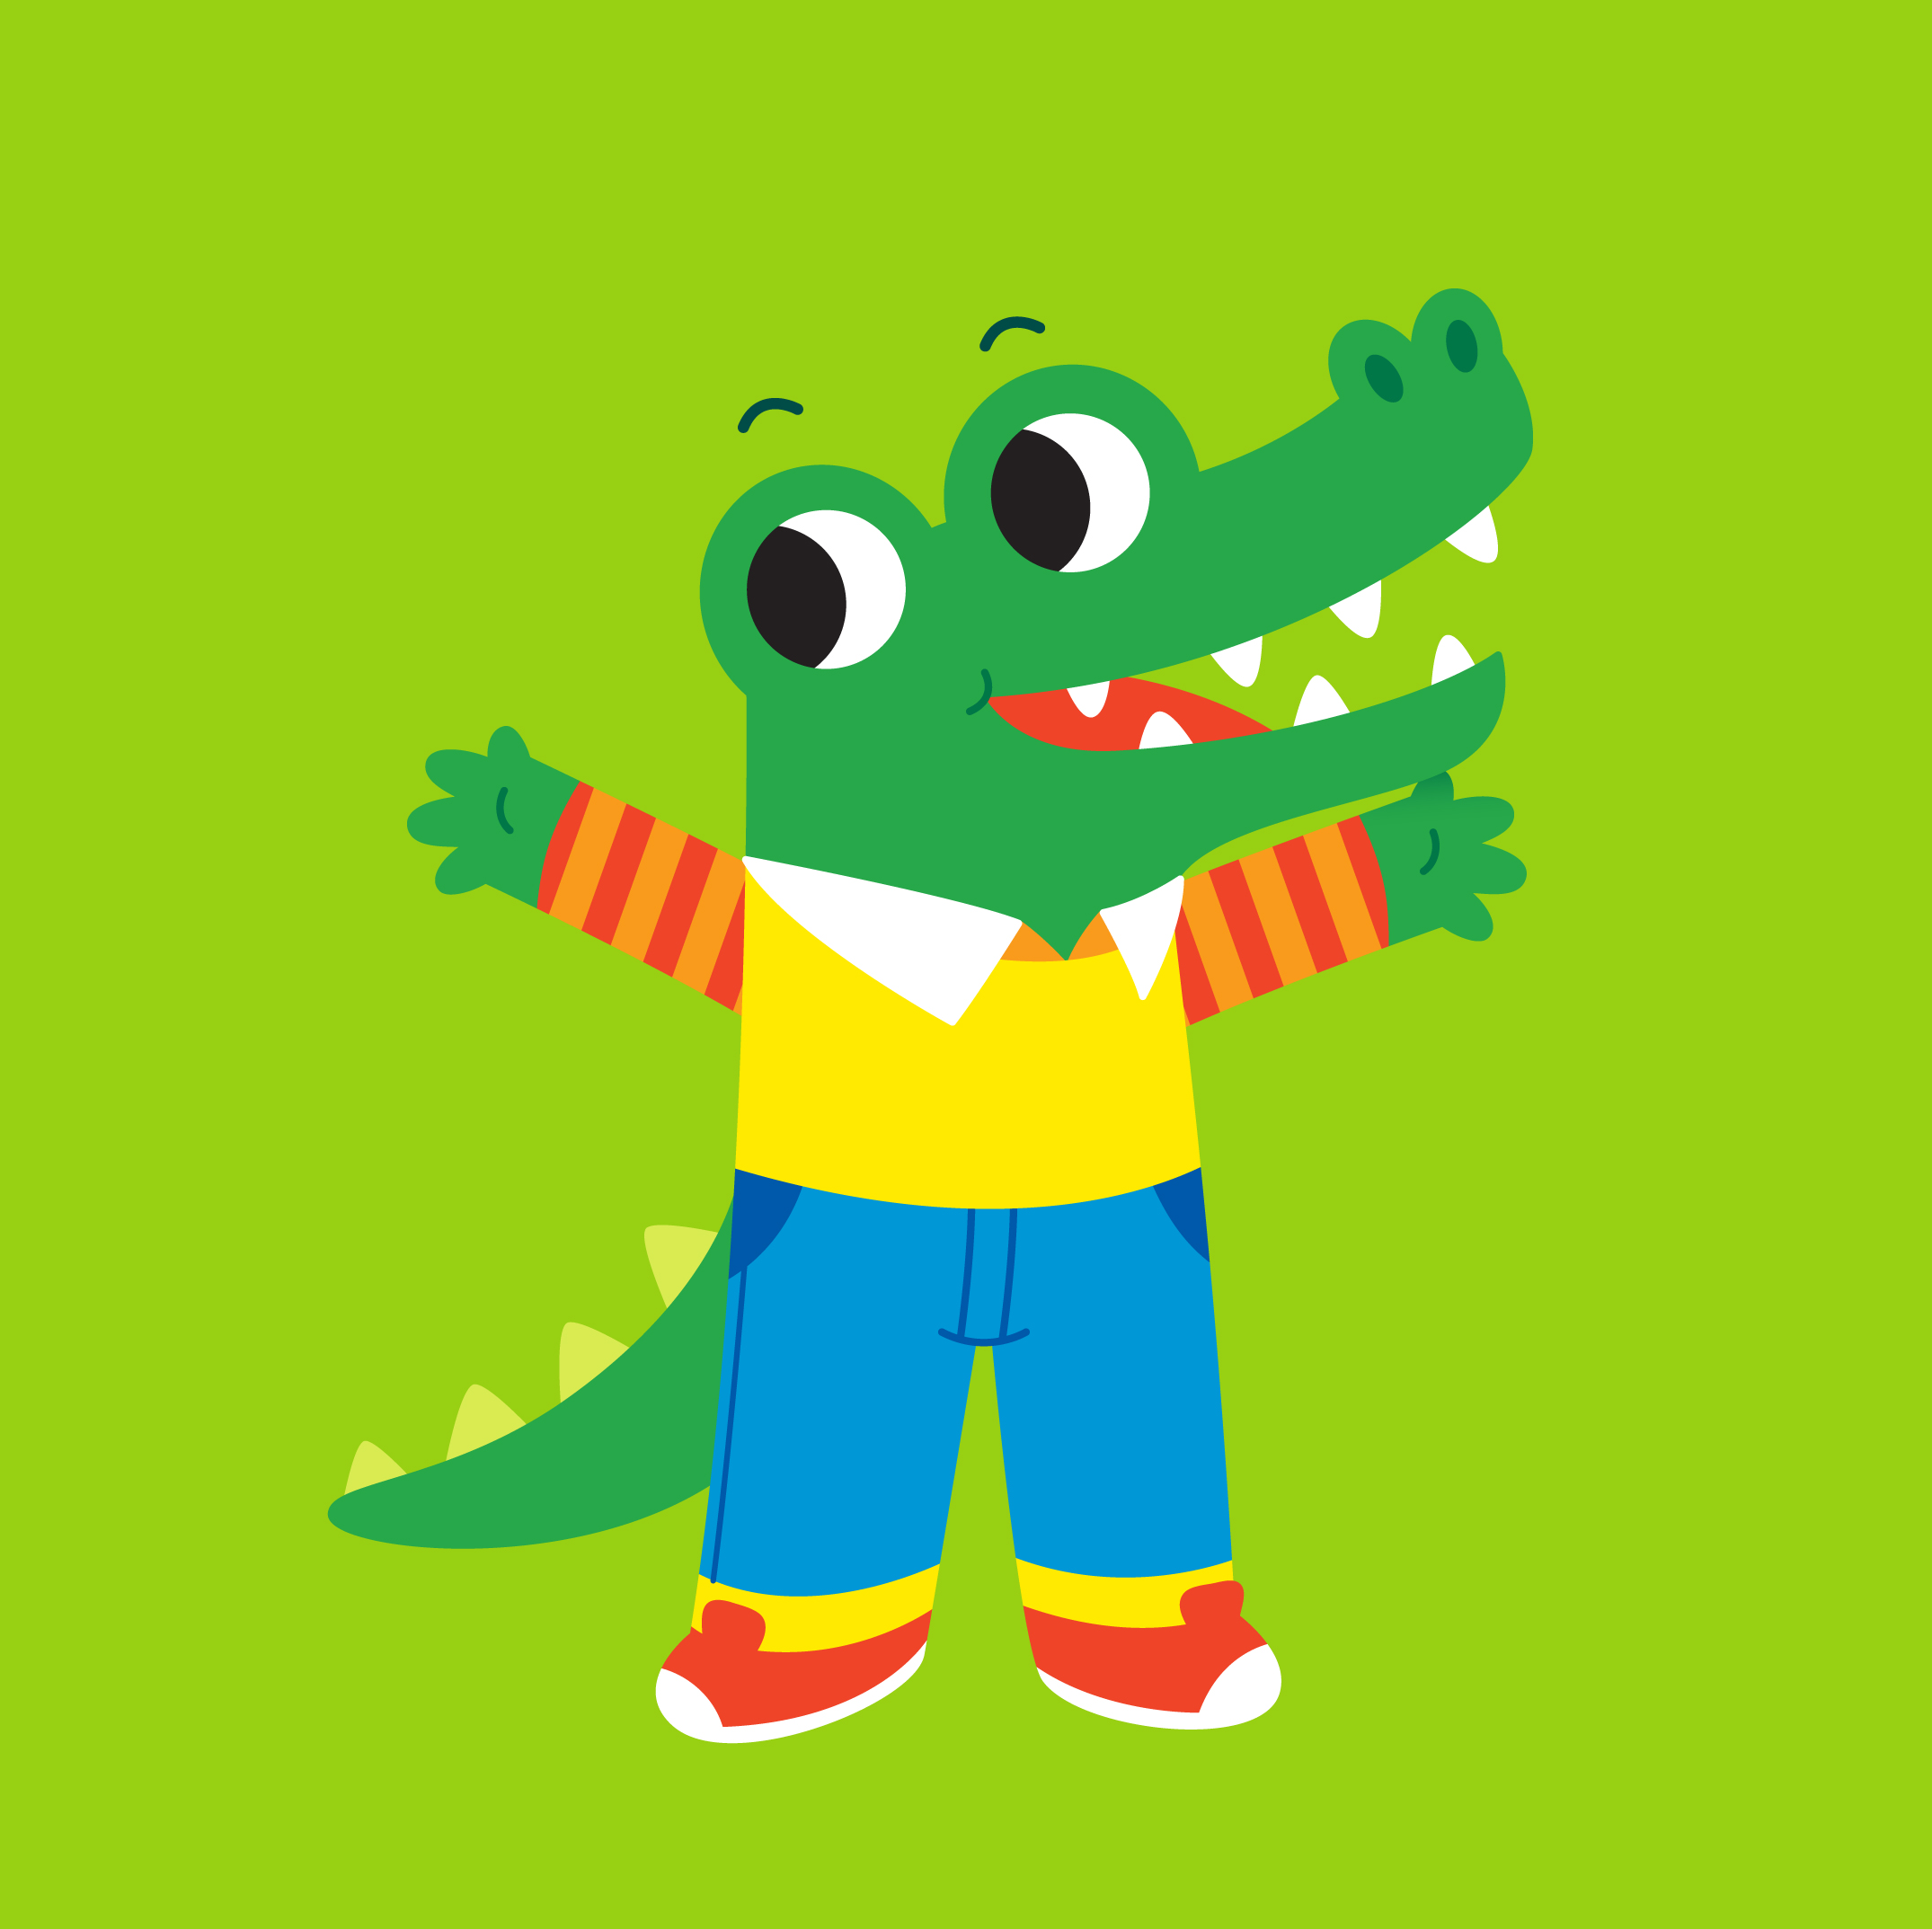 CROCODILE_PAMELA_BARBIERI